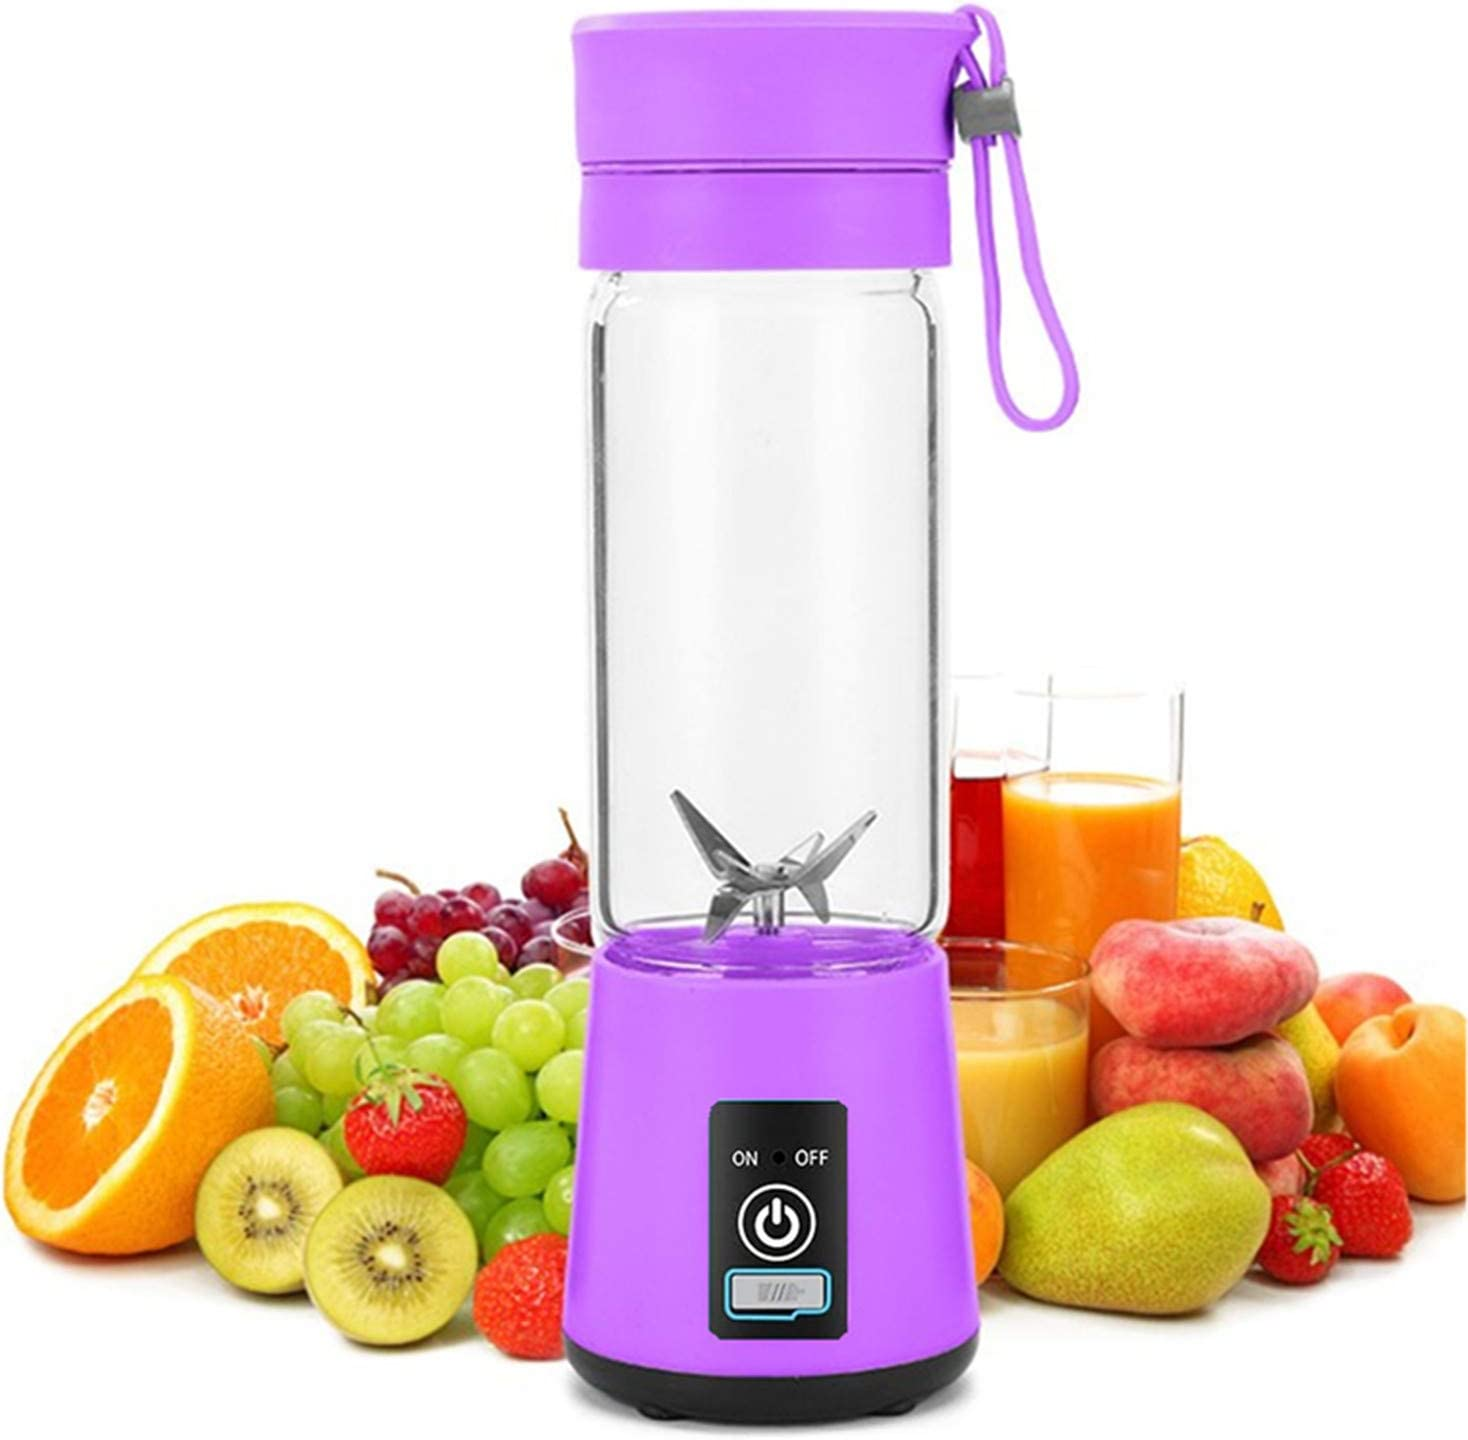 JSDOIN Portable Blender USB Rechargeable, Hand blender for shakes and smoothies smoothie personal blenders for kitchen beutty blender